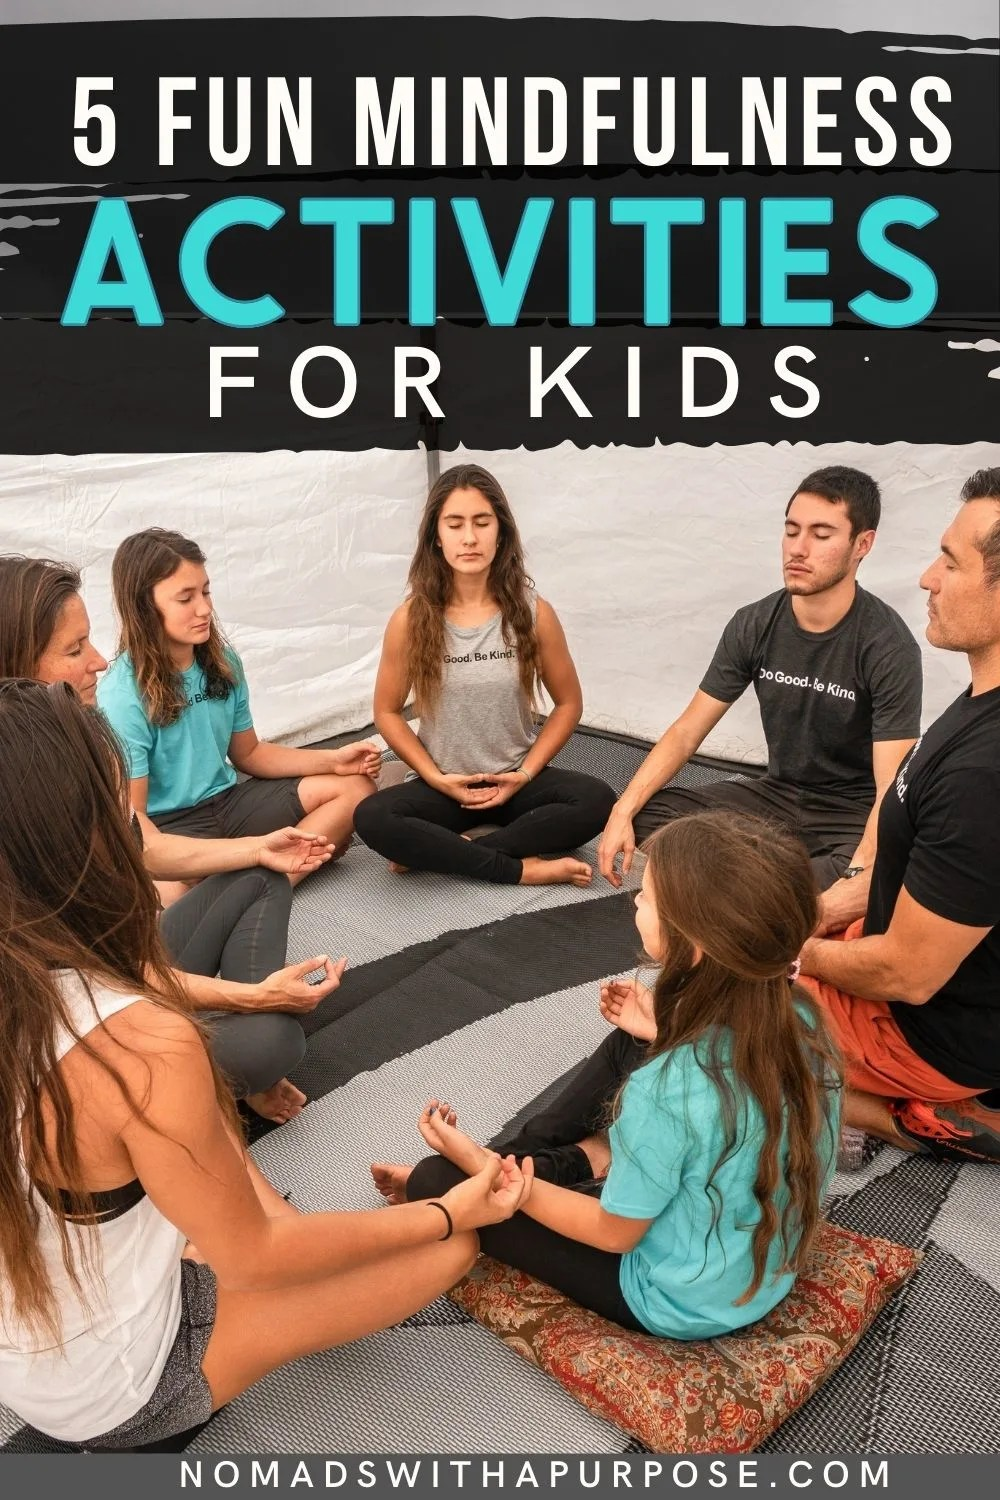 5 Fun Mindfulness Activities For Kids